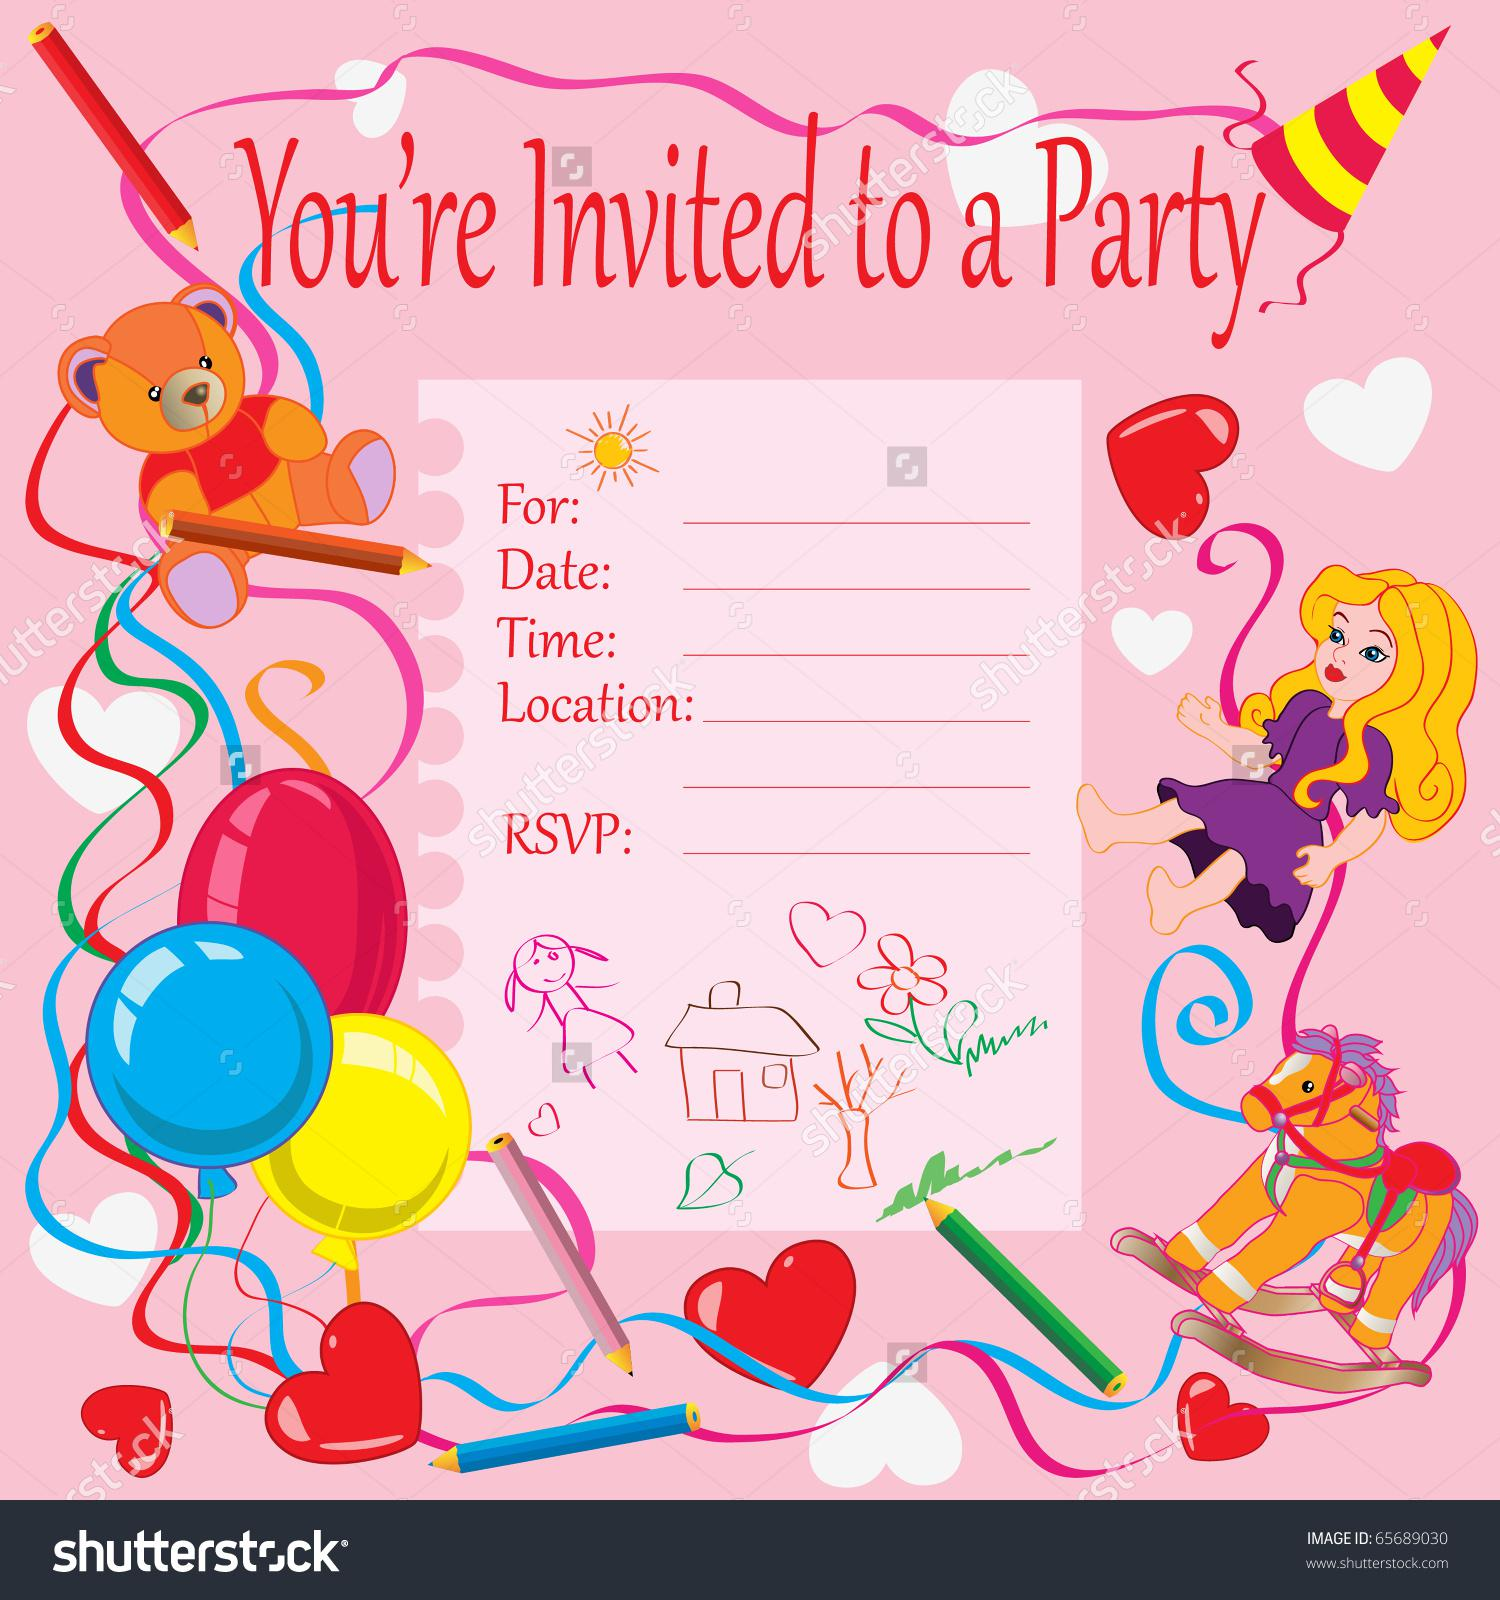 kids party invites online Kaysmakehaukco